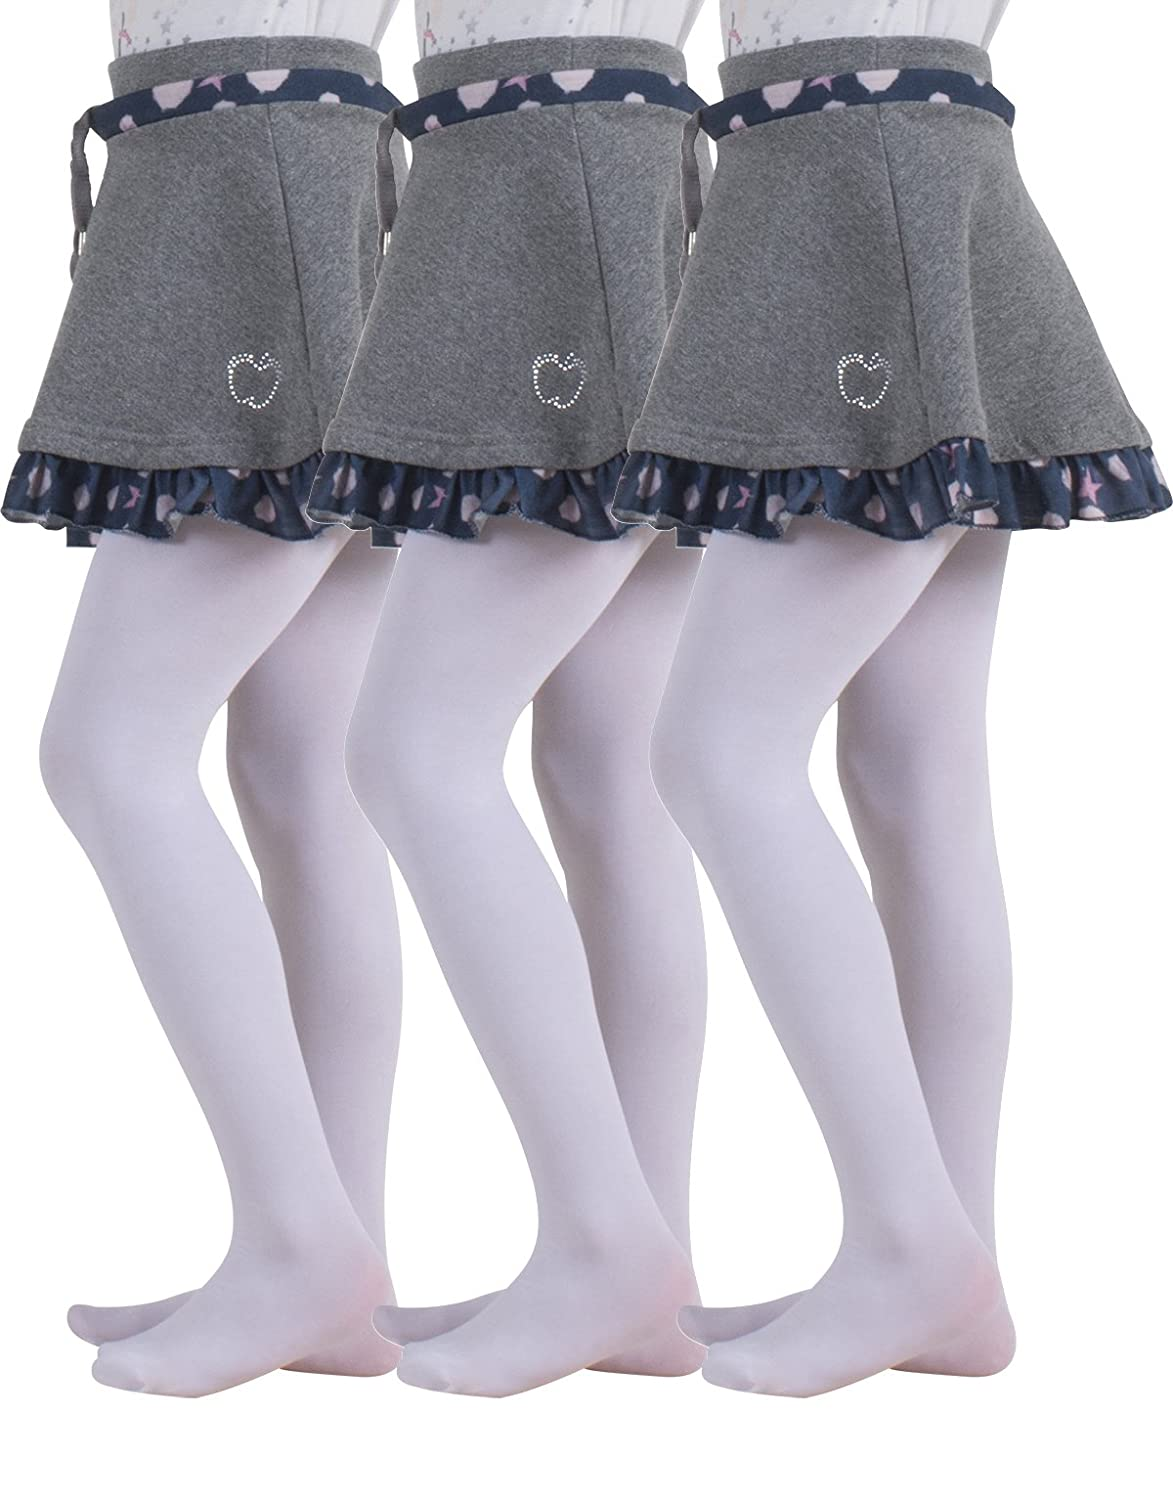 3 PAIRS GIRL MICROFIBER TIGHTS | STRETCHY KIDS TIGHTS FOR SCHOOL | SOFT PANTYHOSE UNIFORM | 40 DEN | 2-14 YEARS | WHITE, BLACK | MADE IN ITALY 08213X3